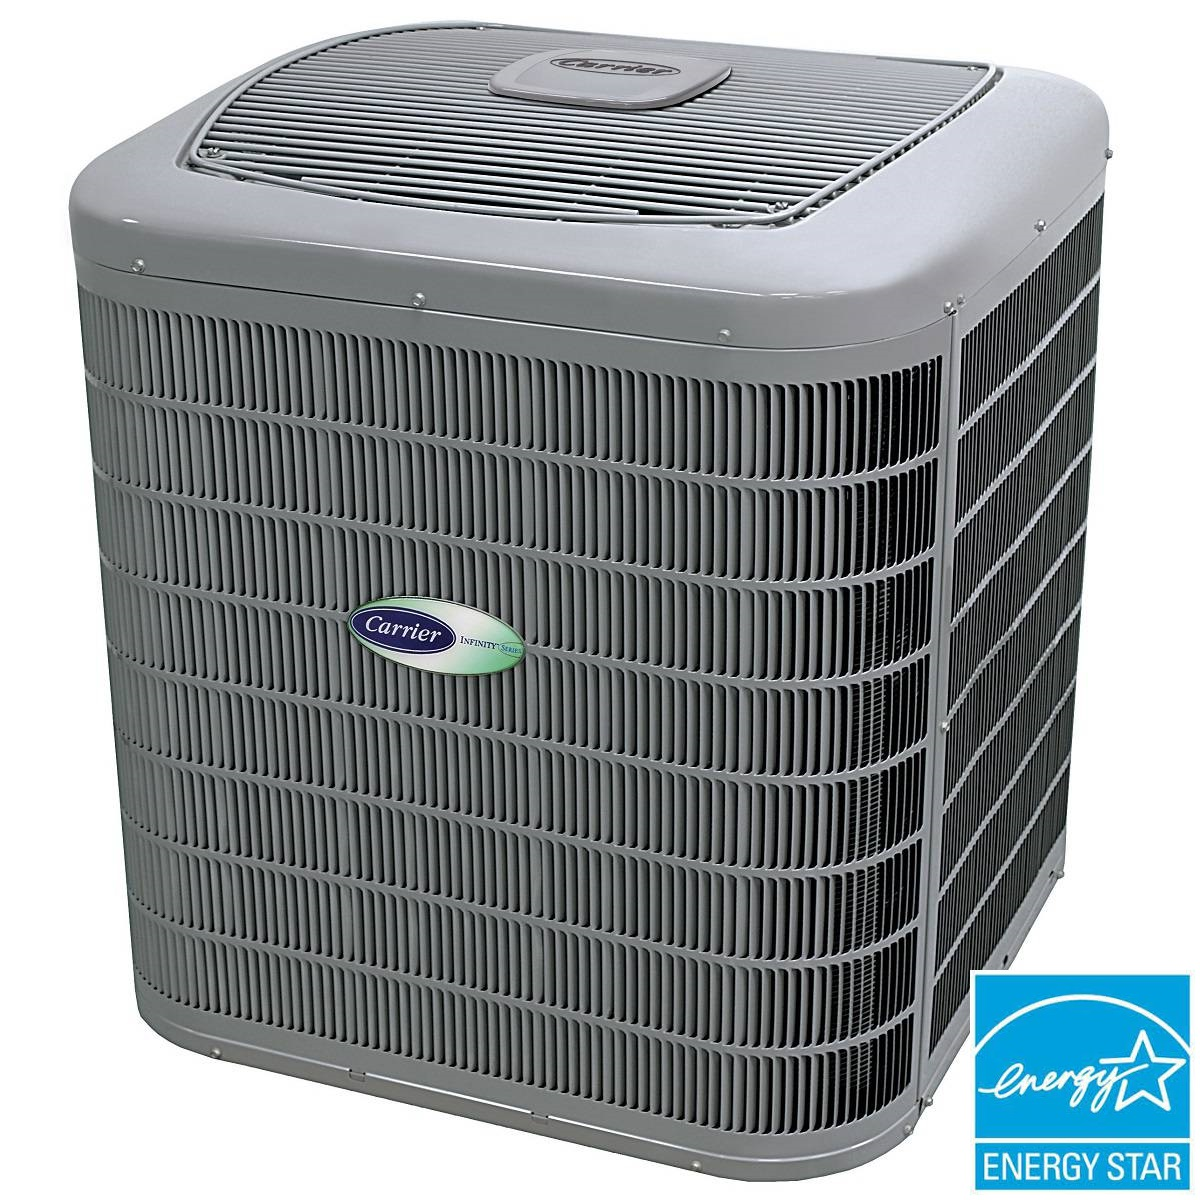 Infinity Carrier Air Conditioner